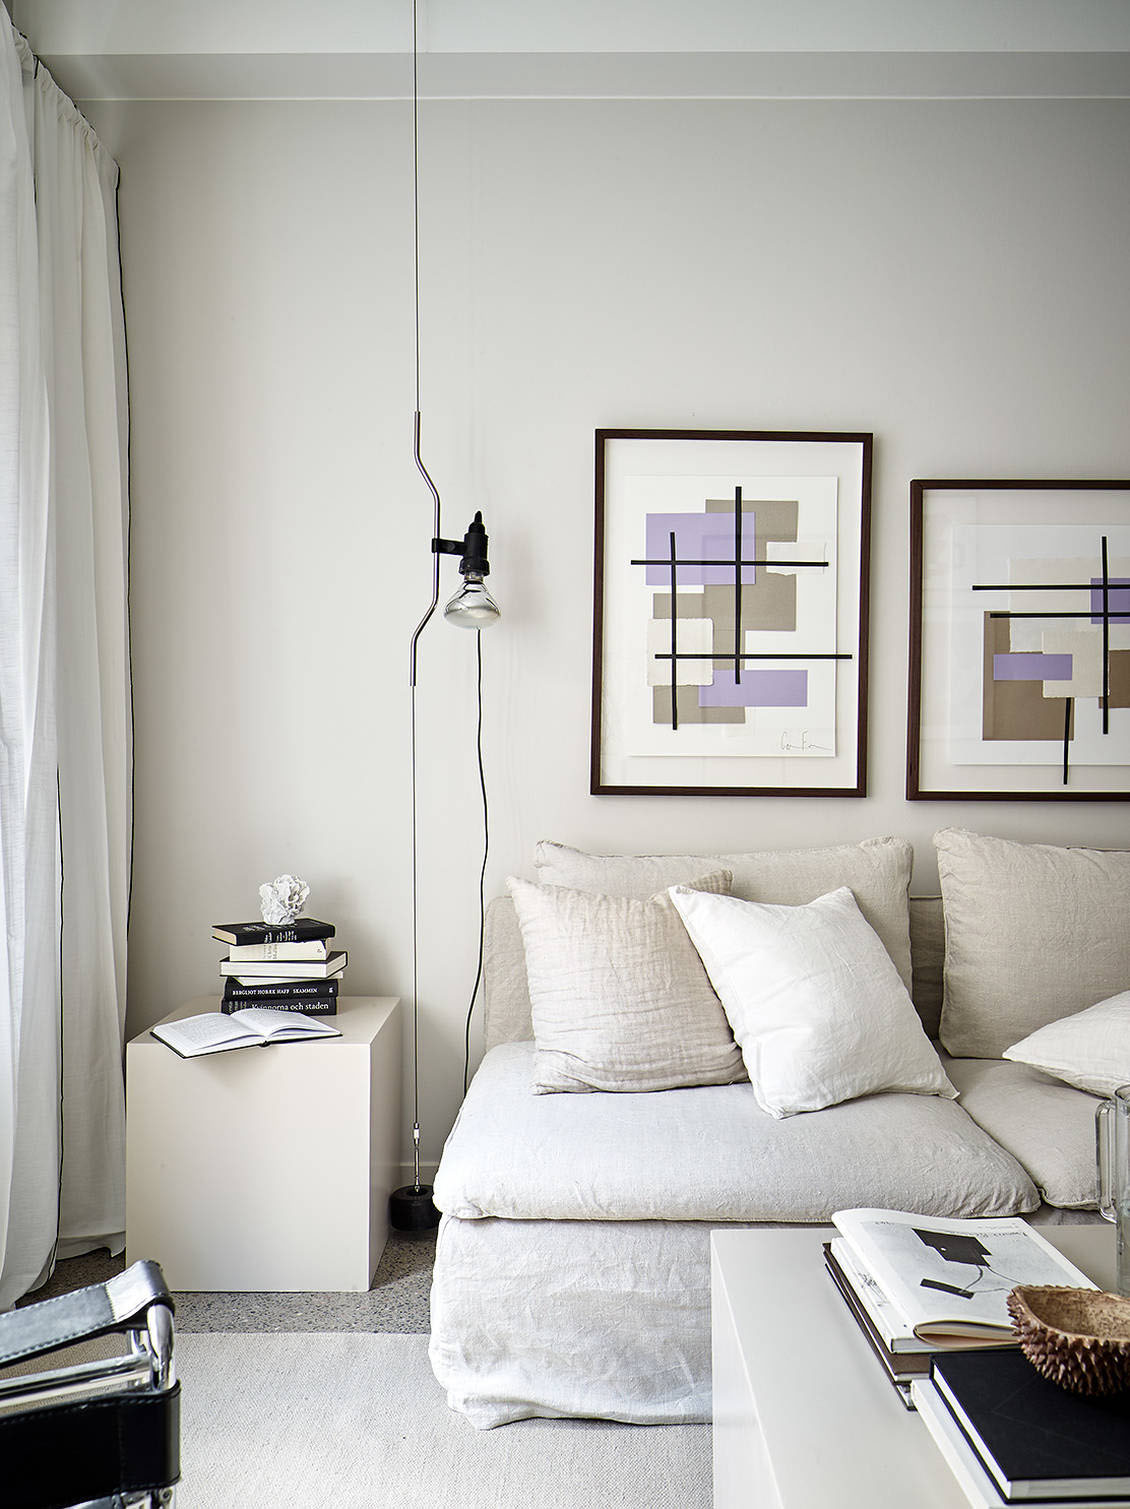 20 Decorating Ideas for Renters